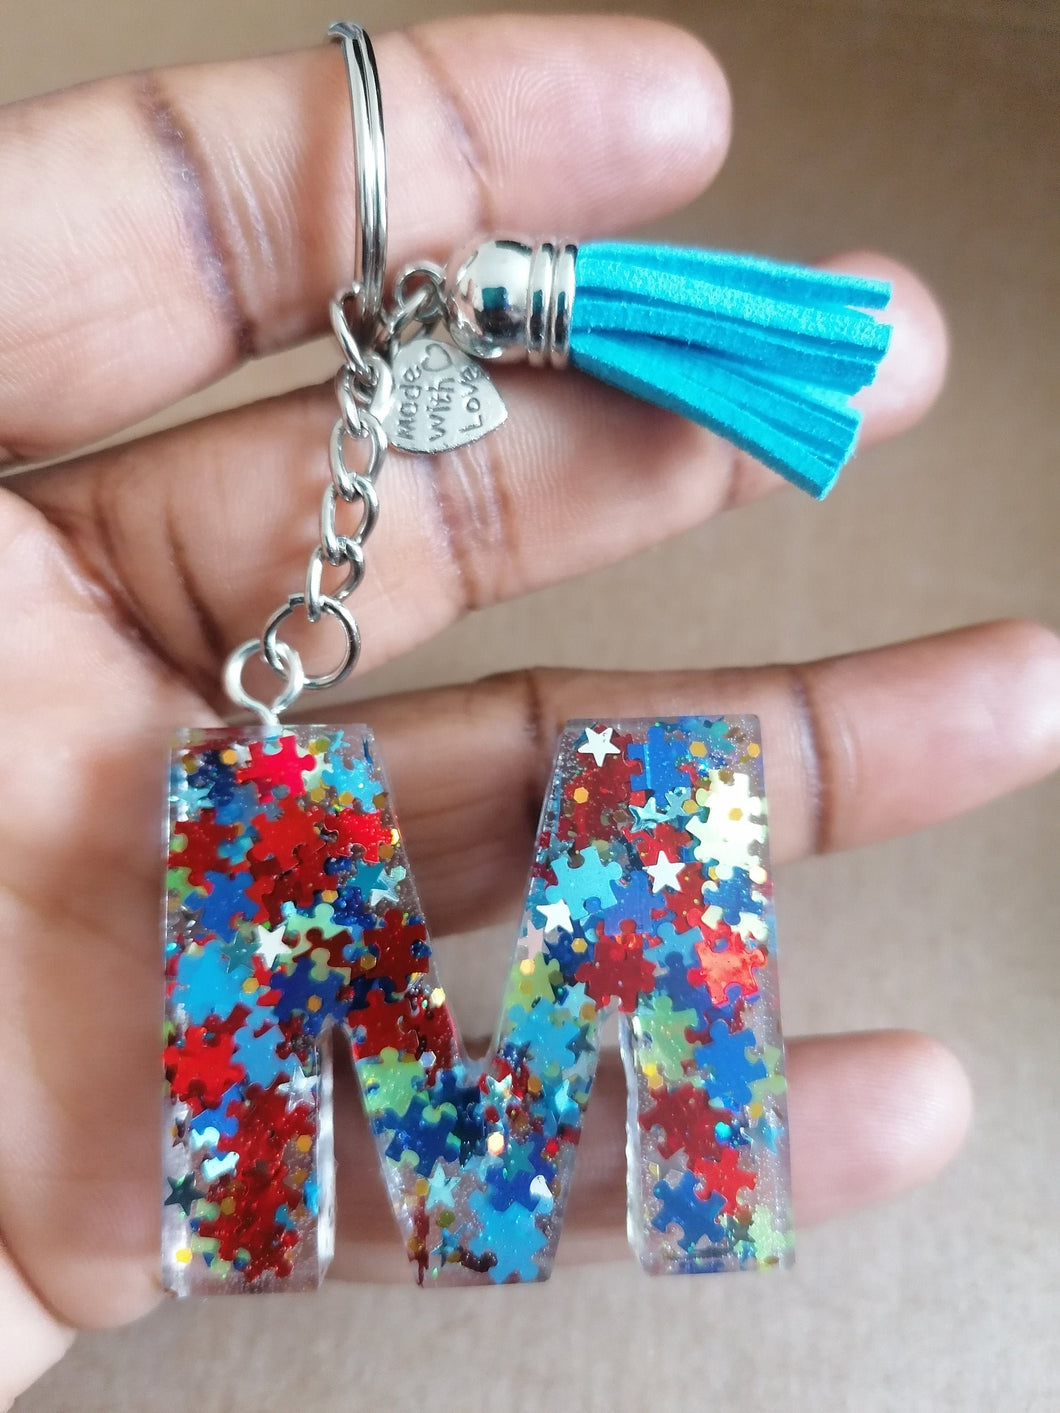 Autism Letter M keyring - Personalised Glitter keychain - stocking filler - Custom order welcome